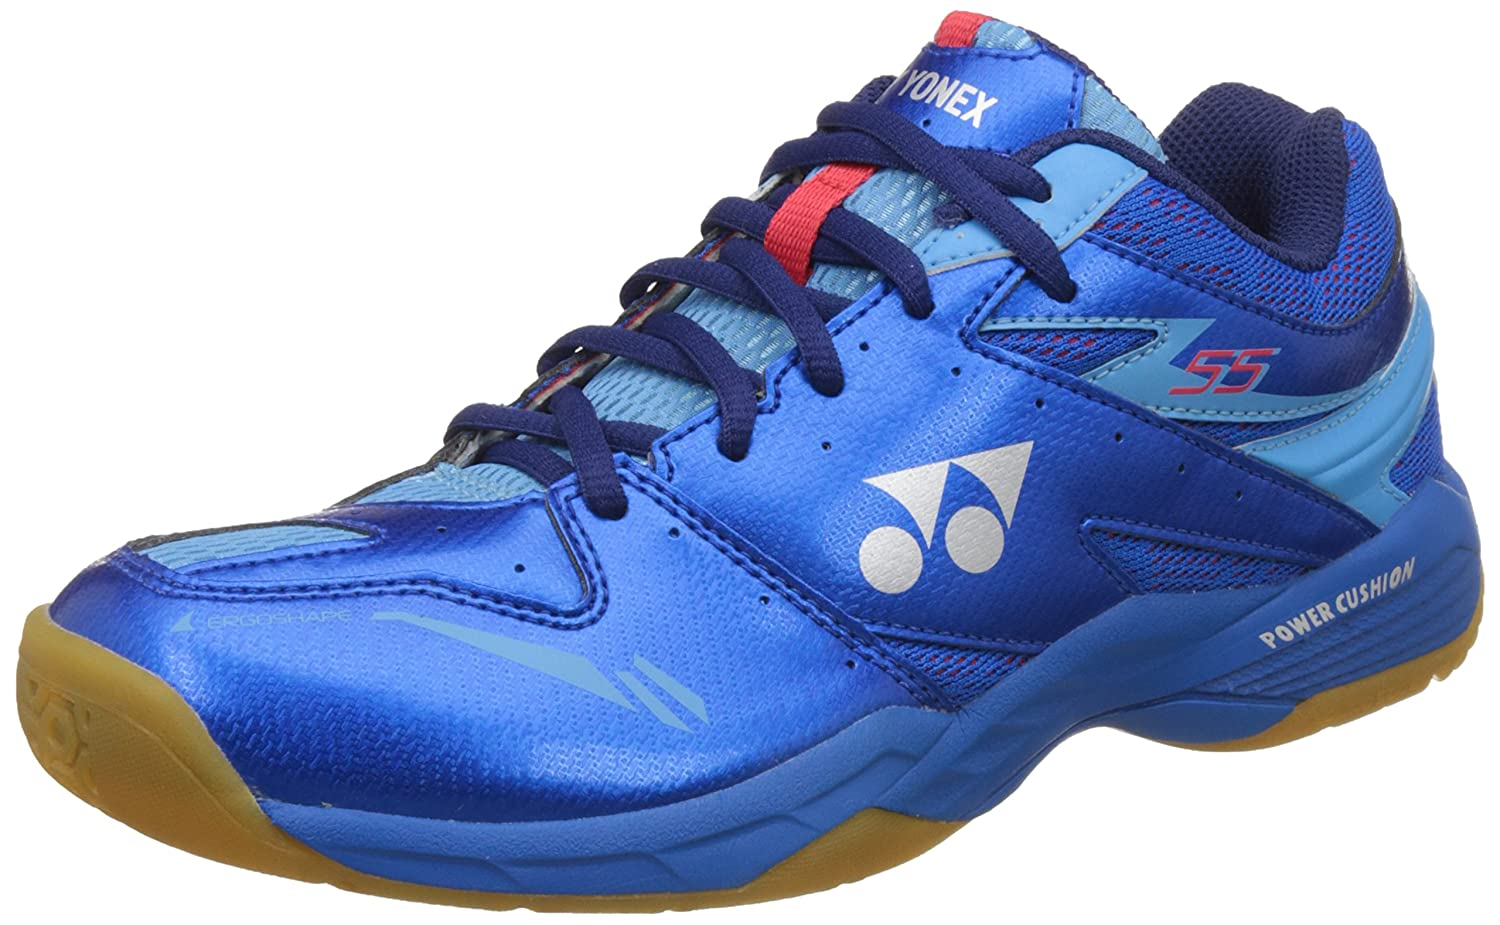 "Yonex ""Power Cushion 35  Badmintonschuhe für Herren, Herren, SHB 55, blau, 8 UK"